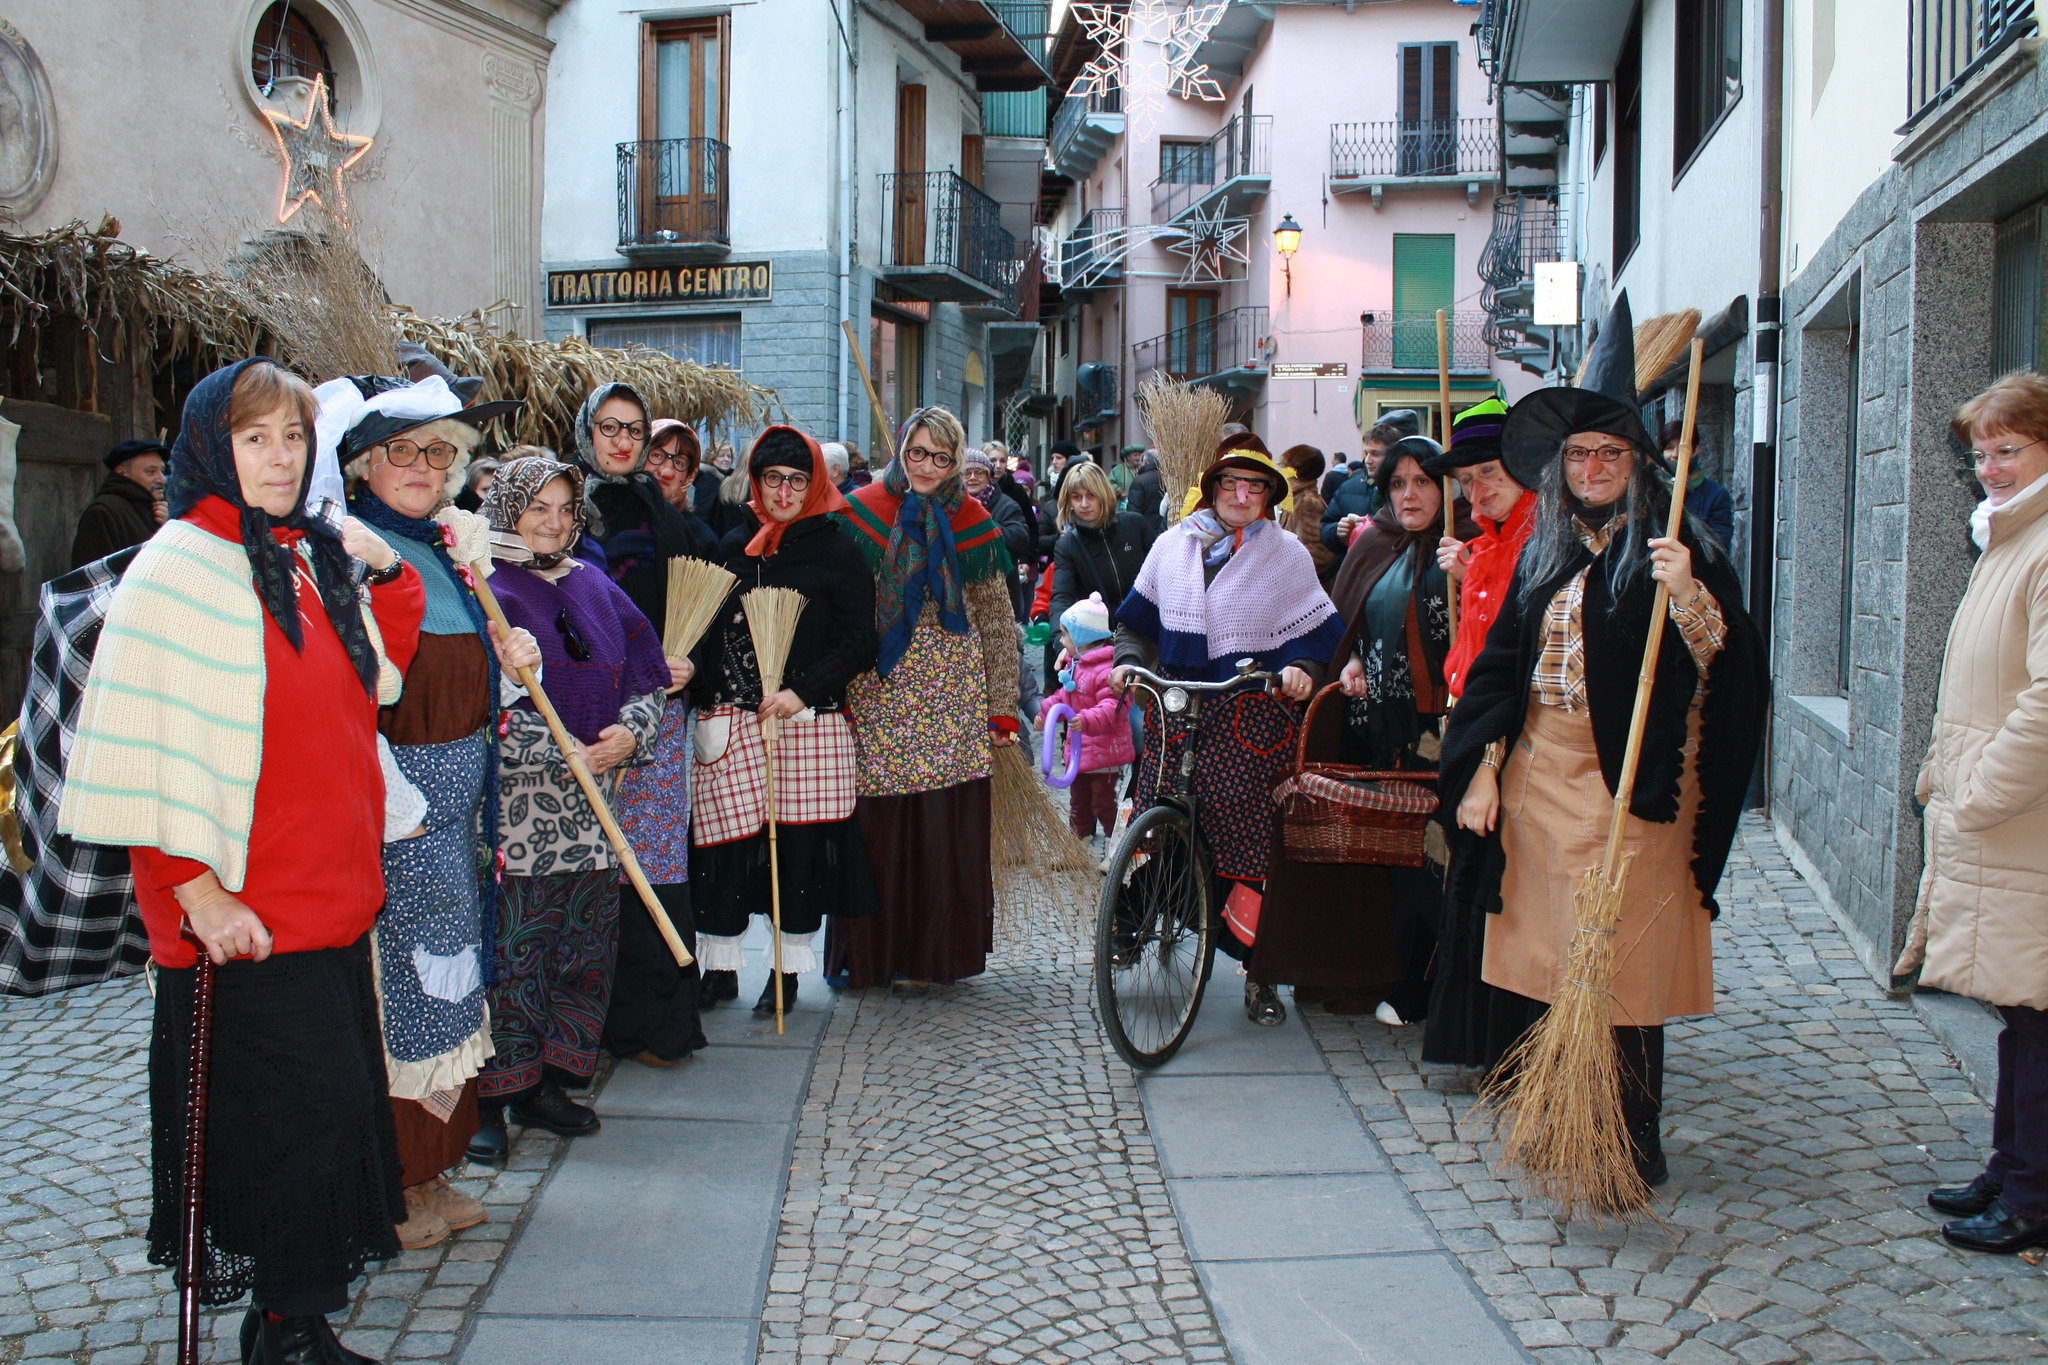 Italian ladies dressed up as La Befana